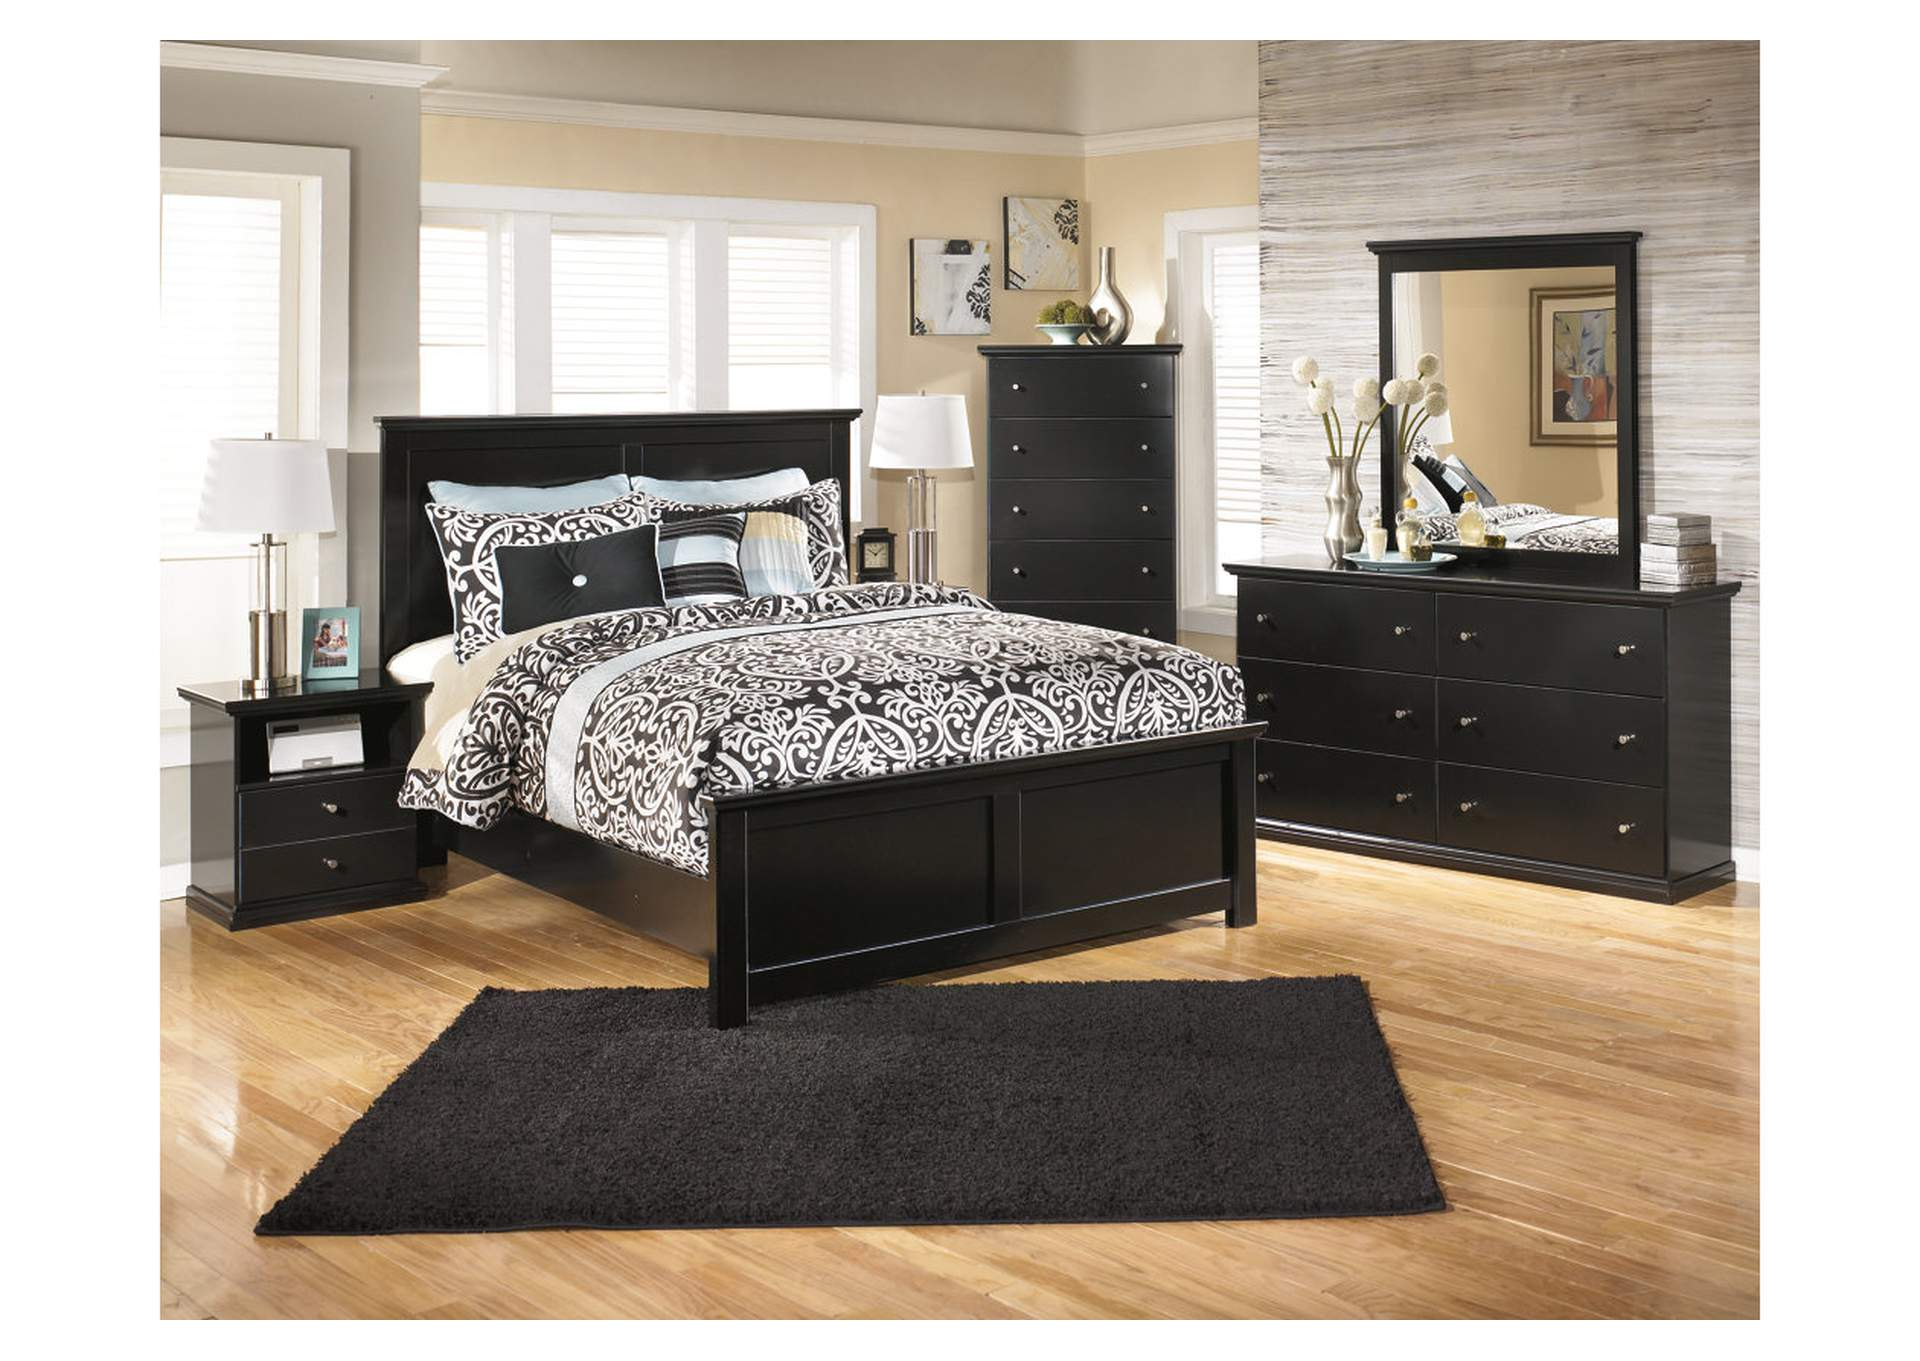 Maribel King Panel Bed w/Dresser, Mirror & Drawer Chest,Signature Design By Ashley